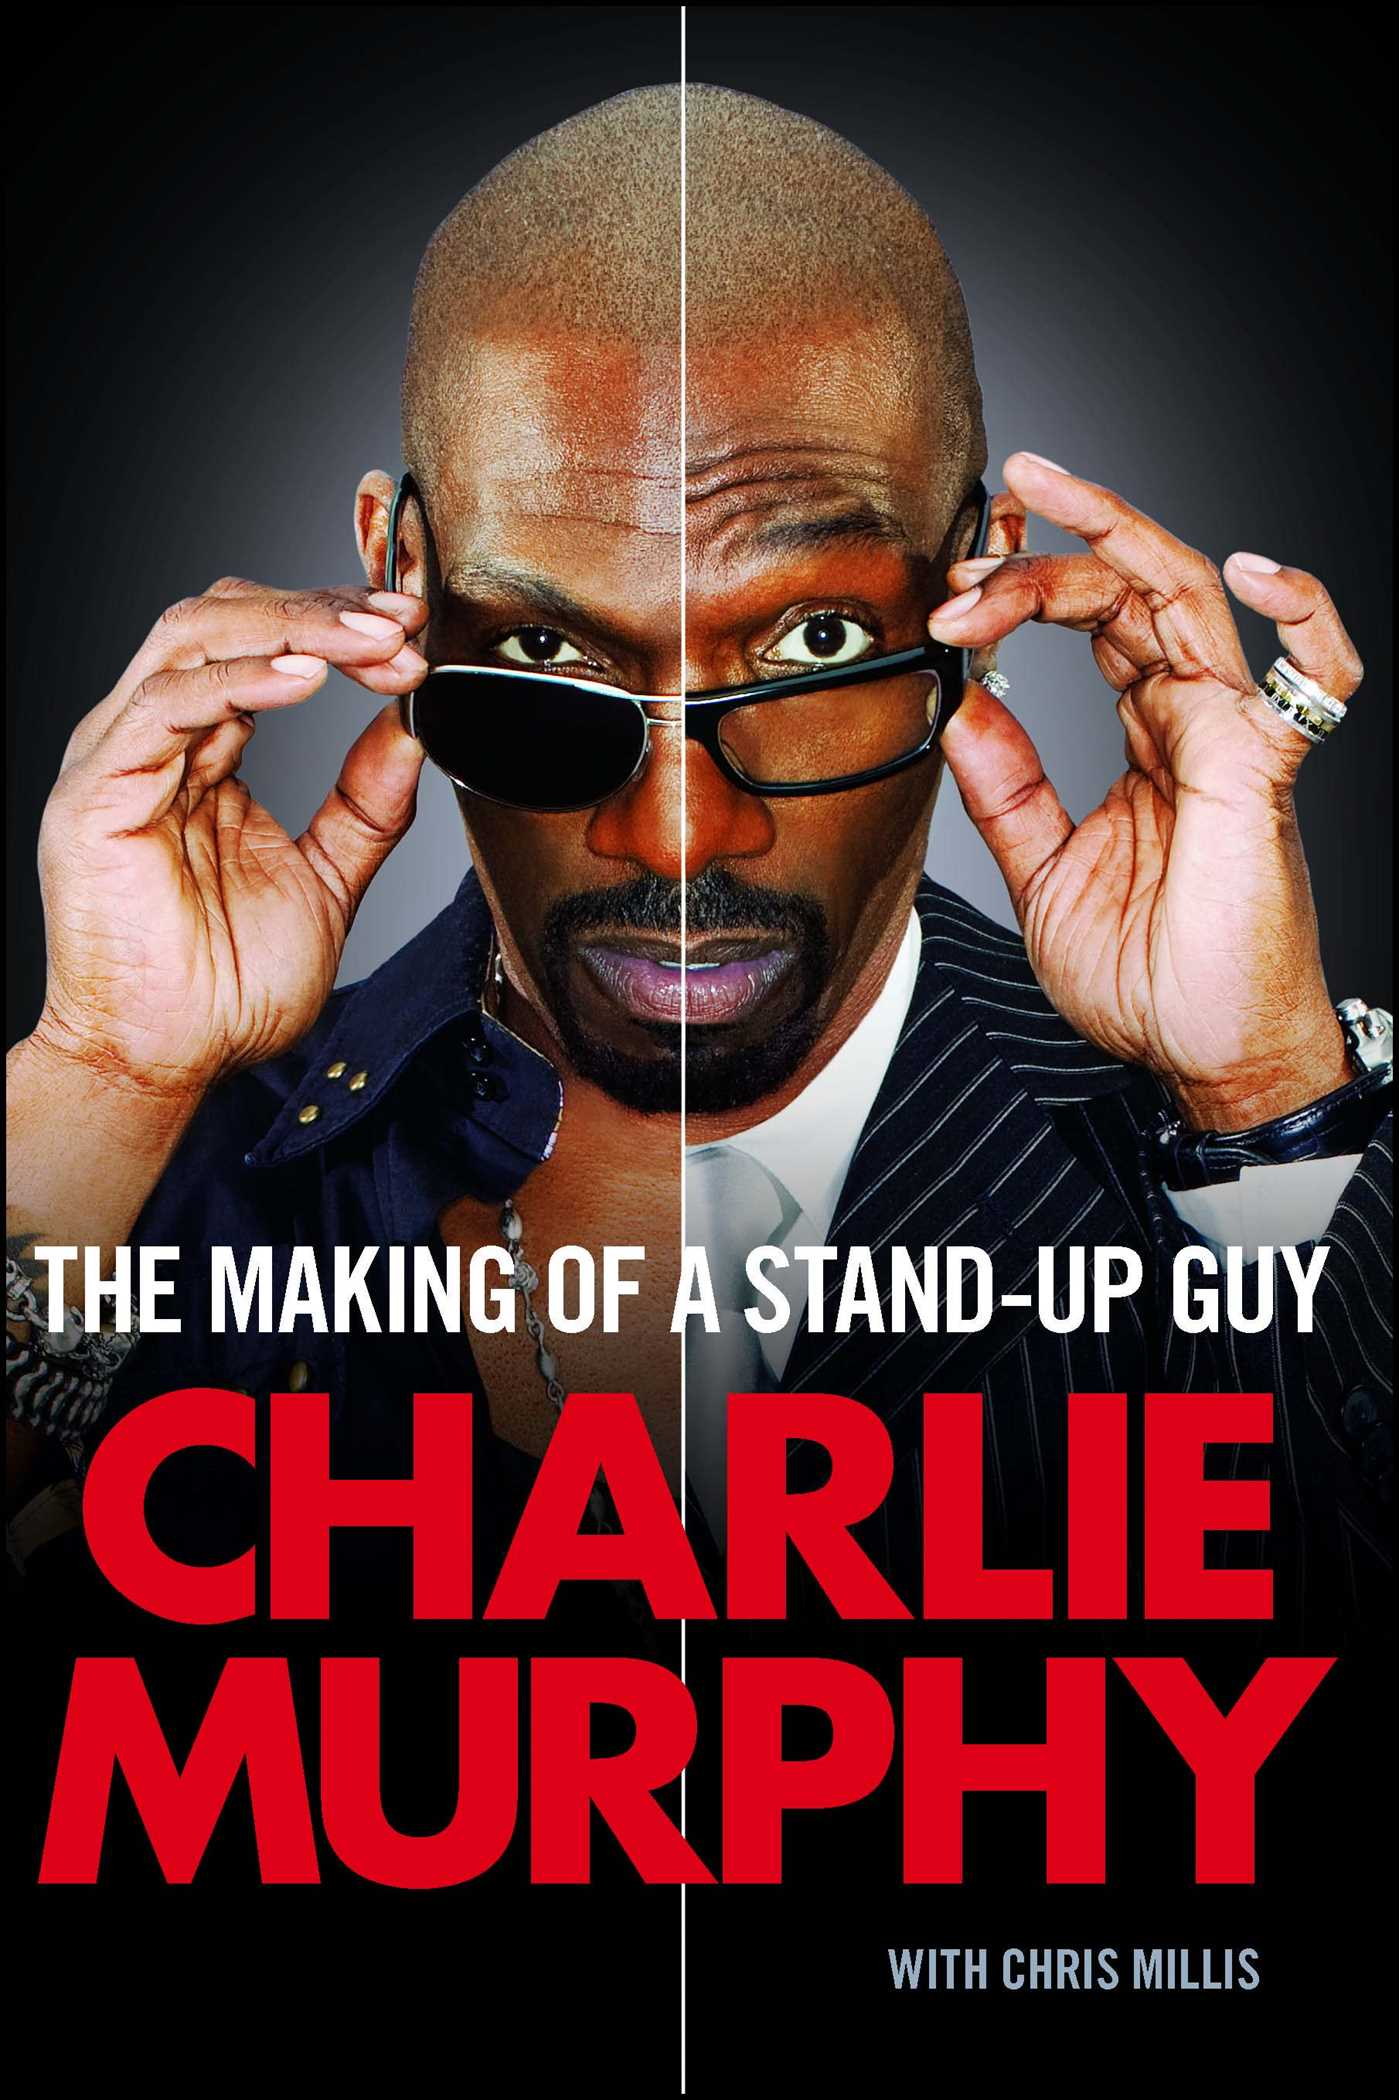 The making of a stand up guy 9781439150535 hr